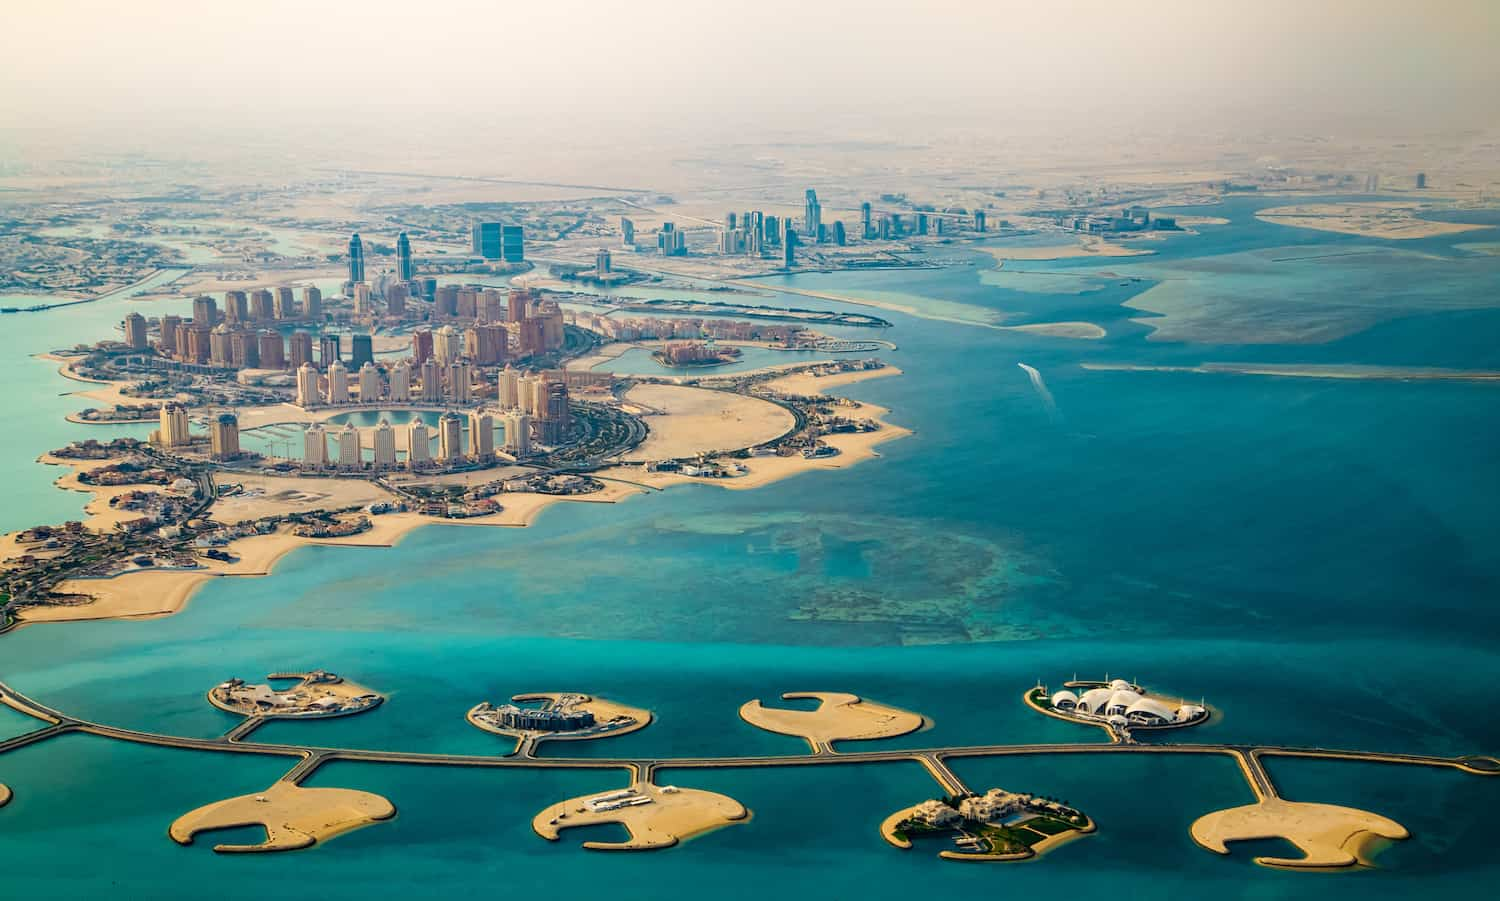 Food insecurity threatens Gulf nation of Qatar as neighbors refuse food trade.